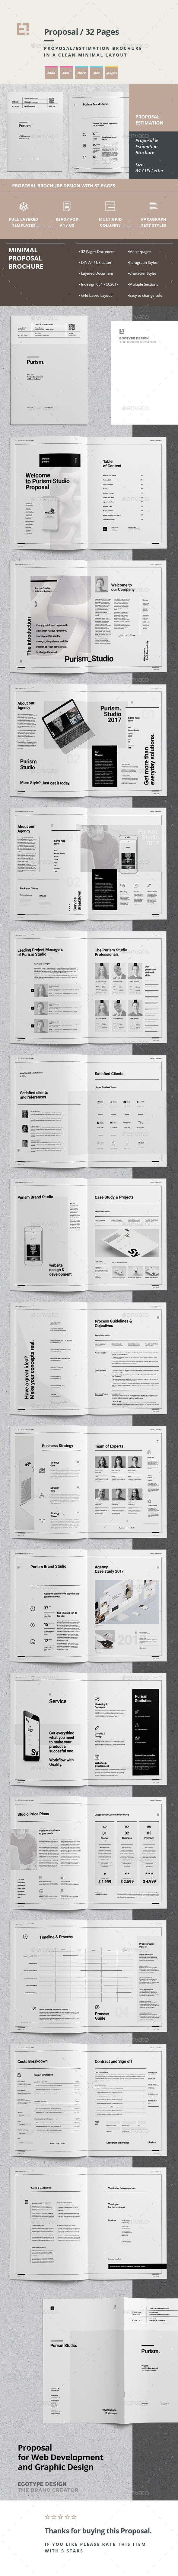 Proposal and Portfolio Brochure Template InDesign INDD - A4 and US Letter Size